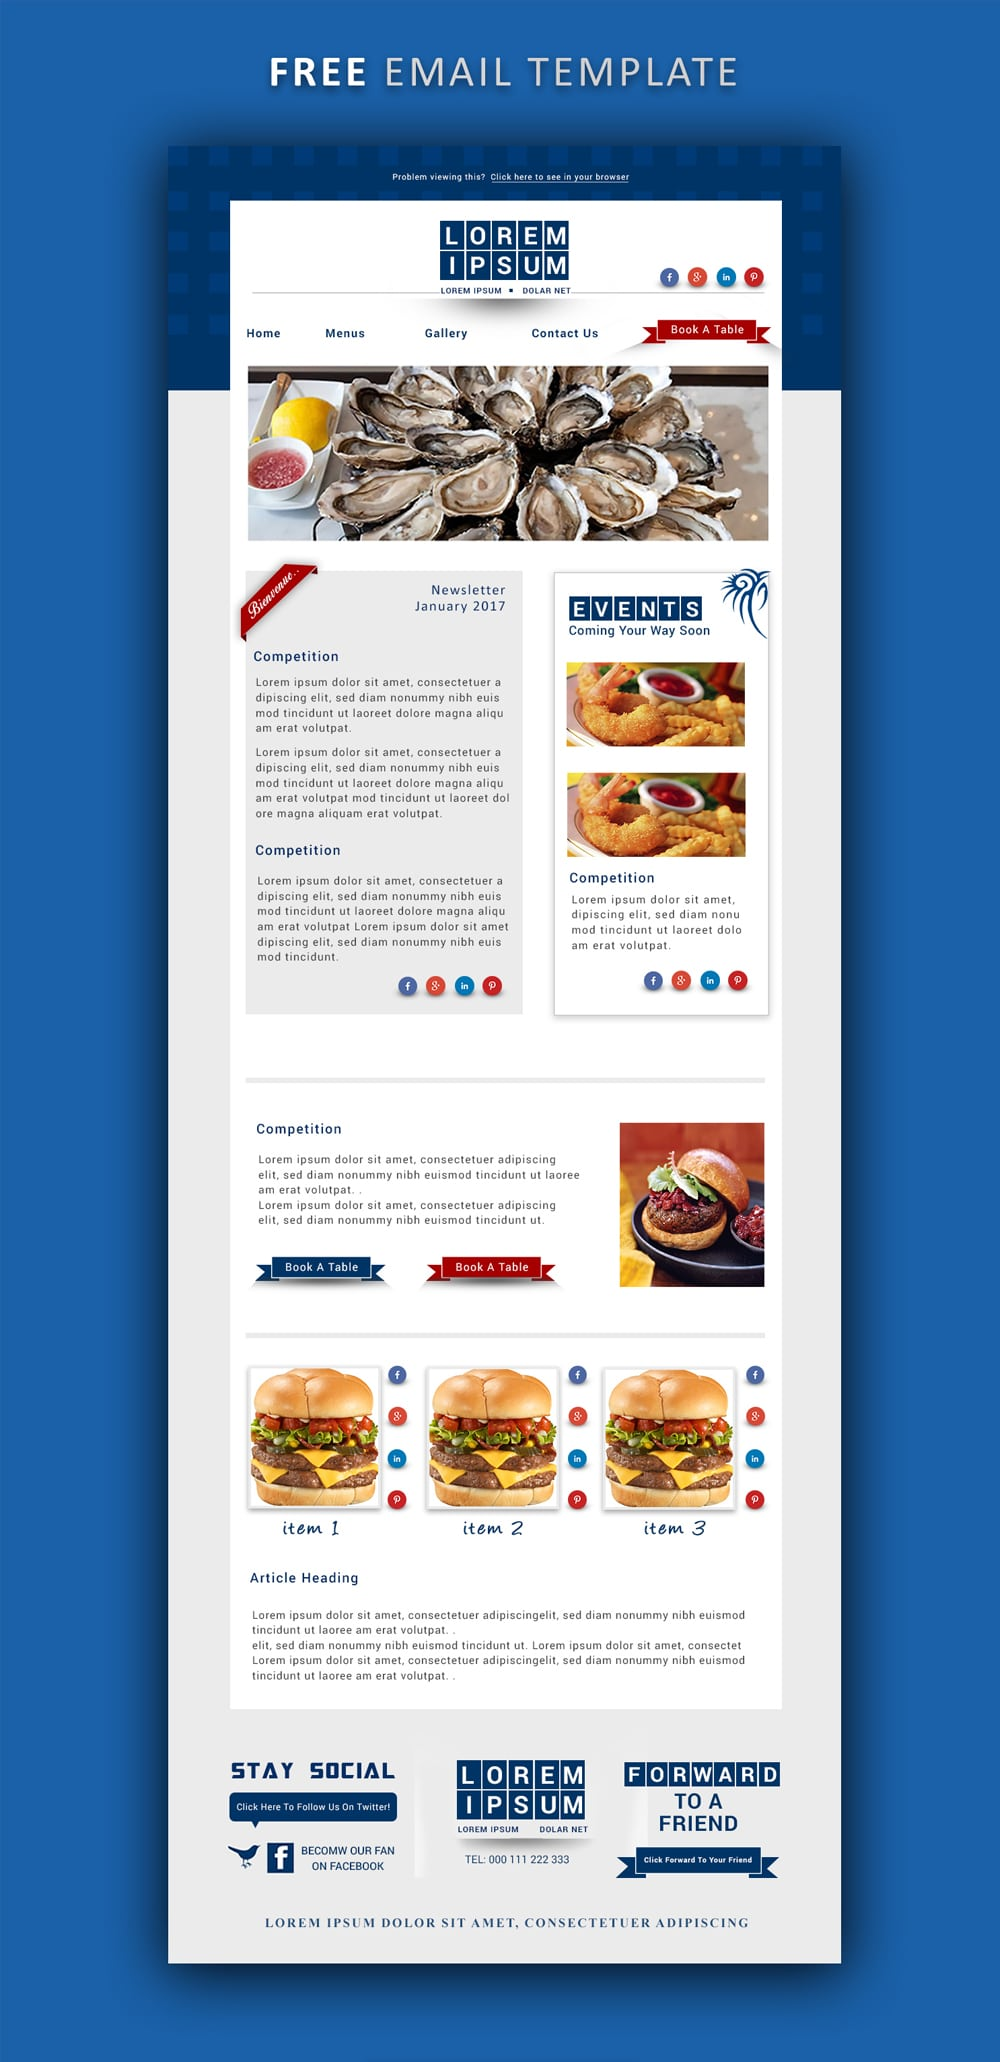 Free Email Newsletter Template PSD